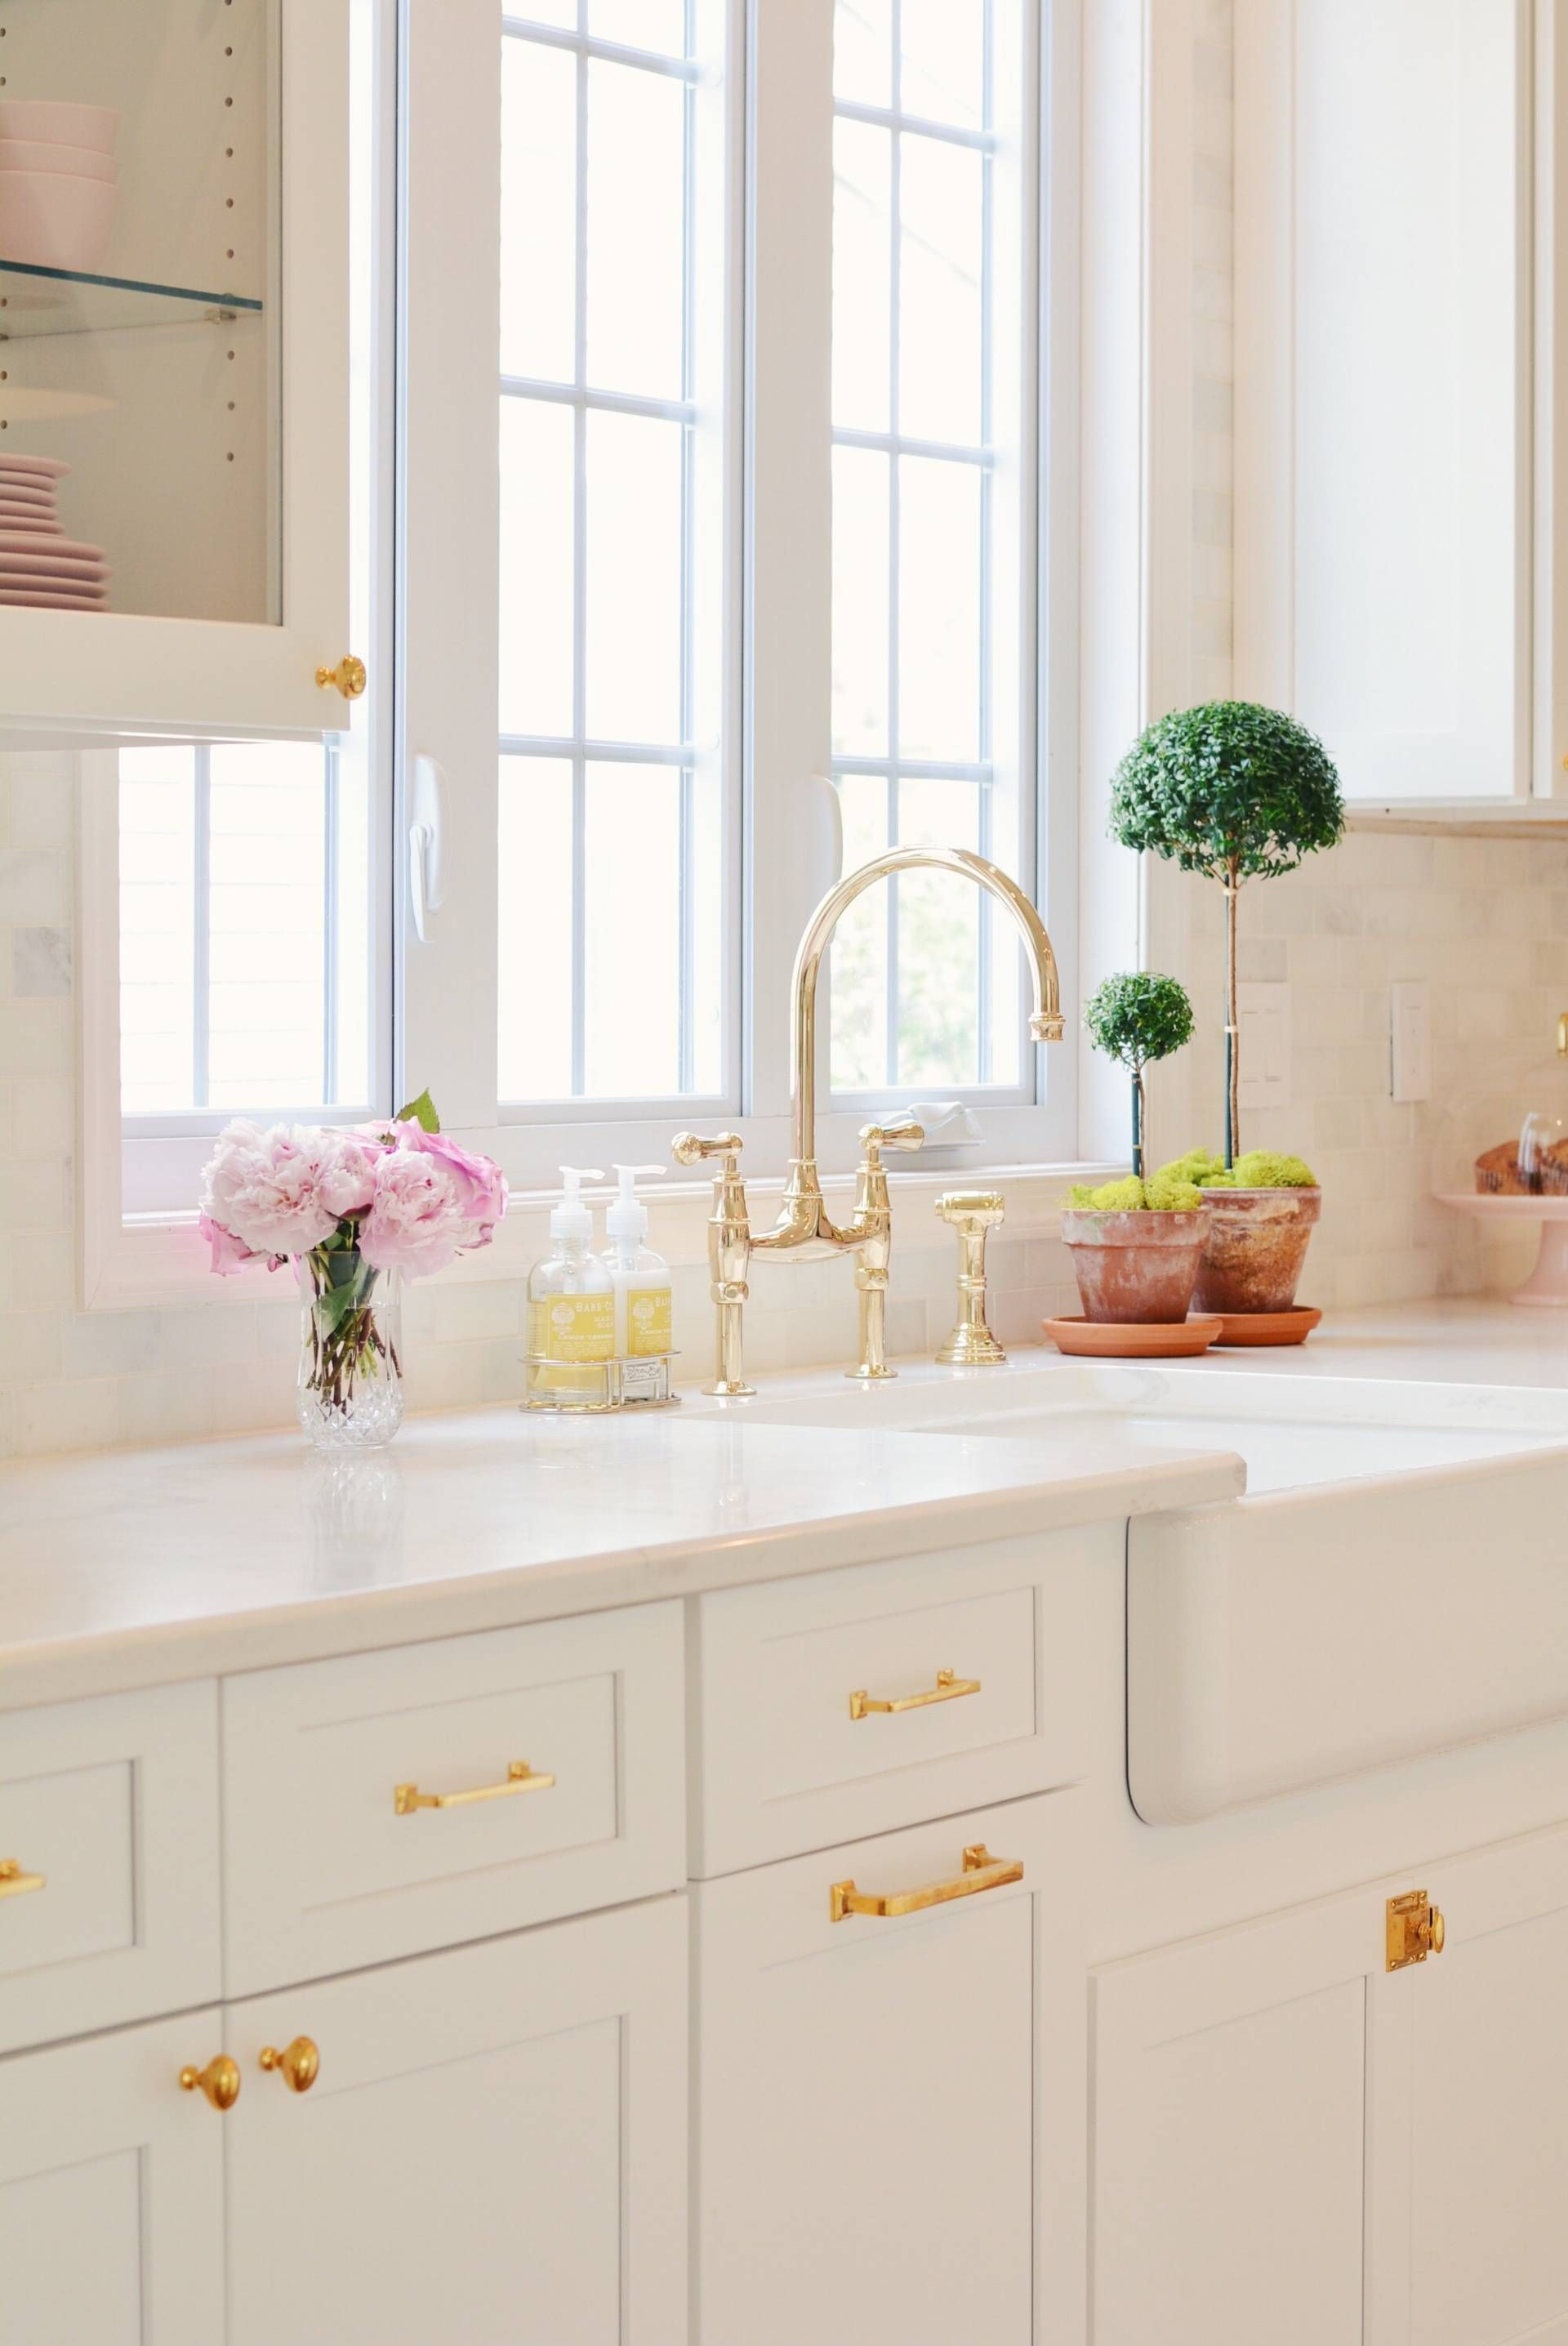 3 tips to make your home kitchen more lovely zah kitchen remodel rh pinterest com